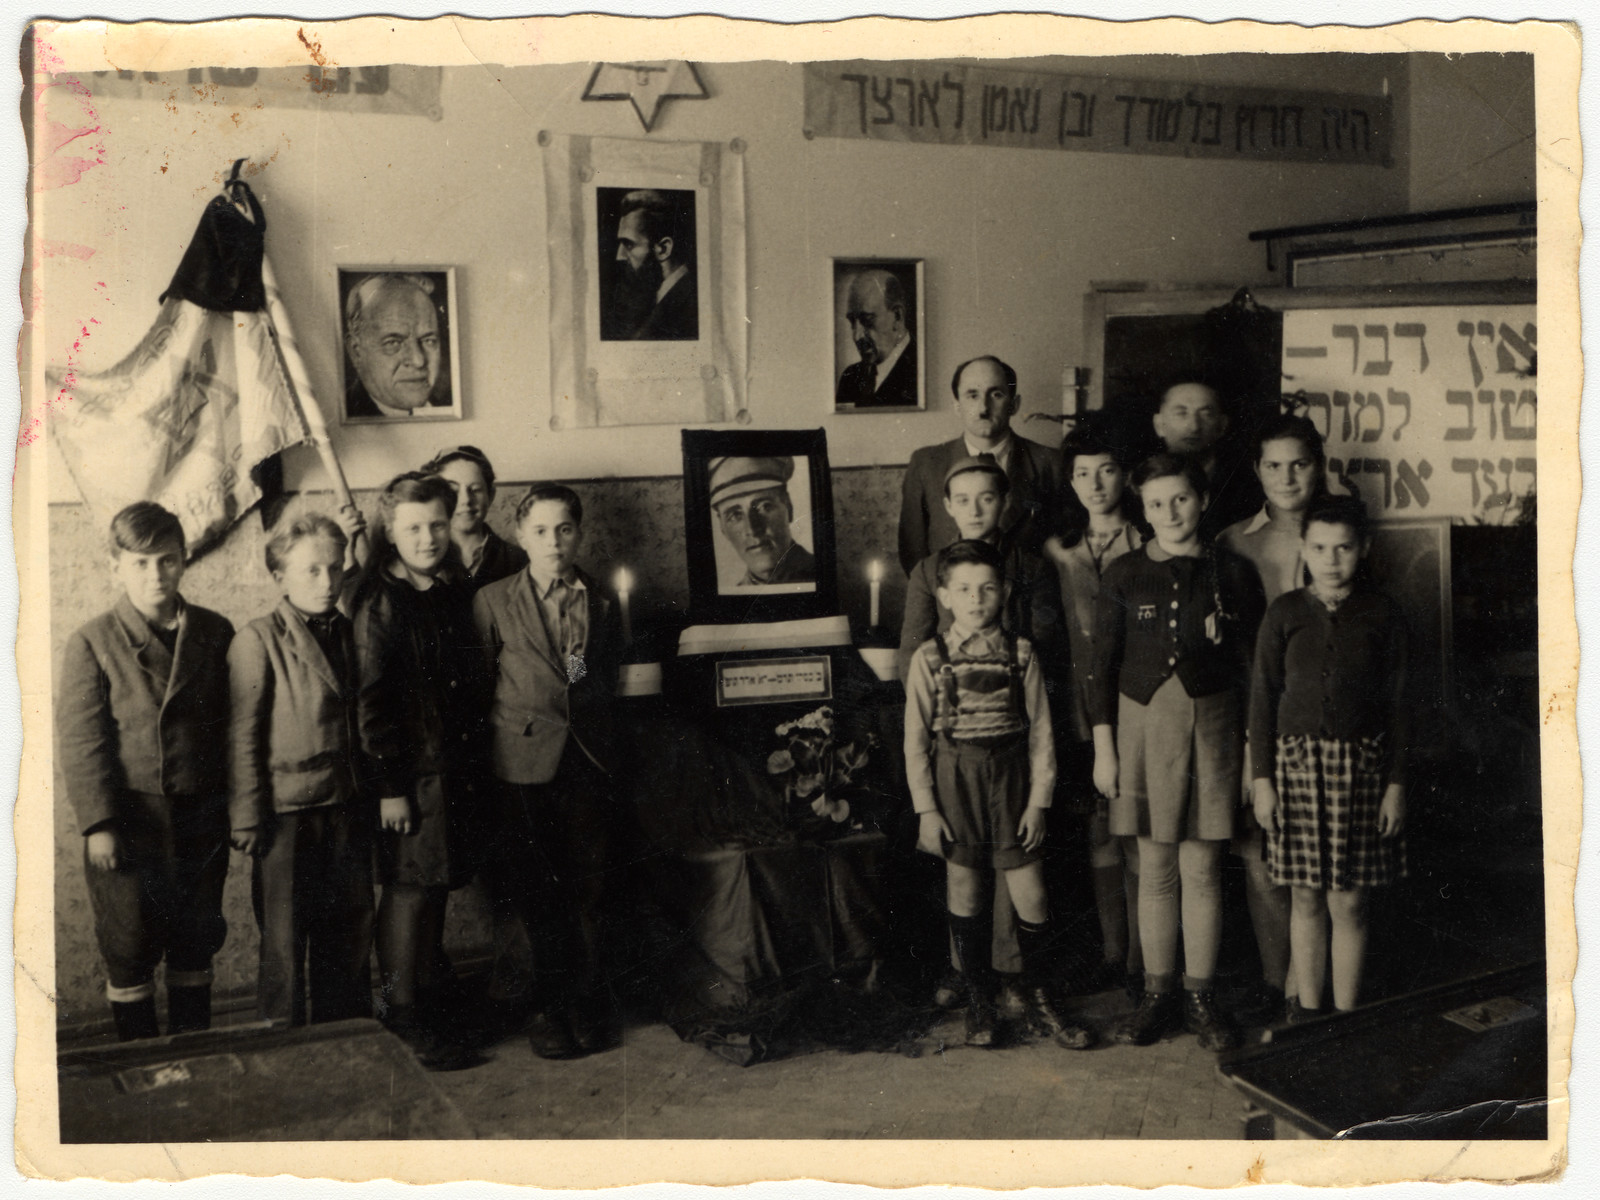 Zionist youth pose together in the Feldafing displaced persons' camp in a room decorated with Hebrew banners, a Zionist flag and portraits of Bialik, Herzl, Trumpeldor and Weitzman.  Rifka Lifschitz is standing third from the right.  Ada Rosenberg is on the left next to the flag.